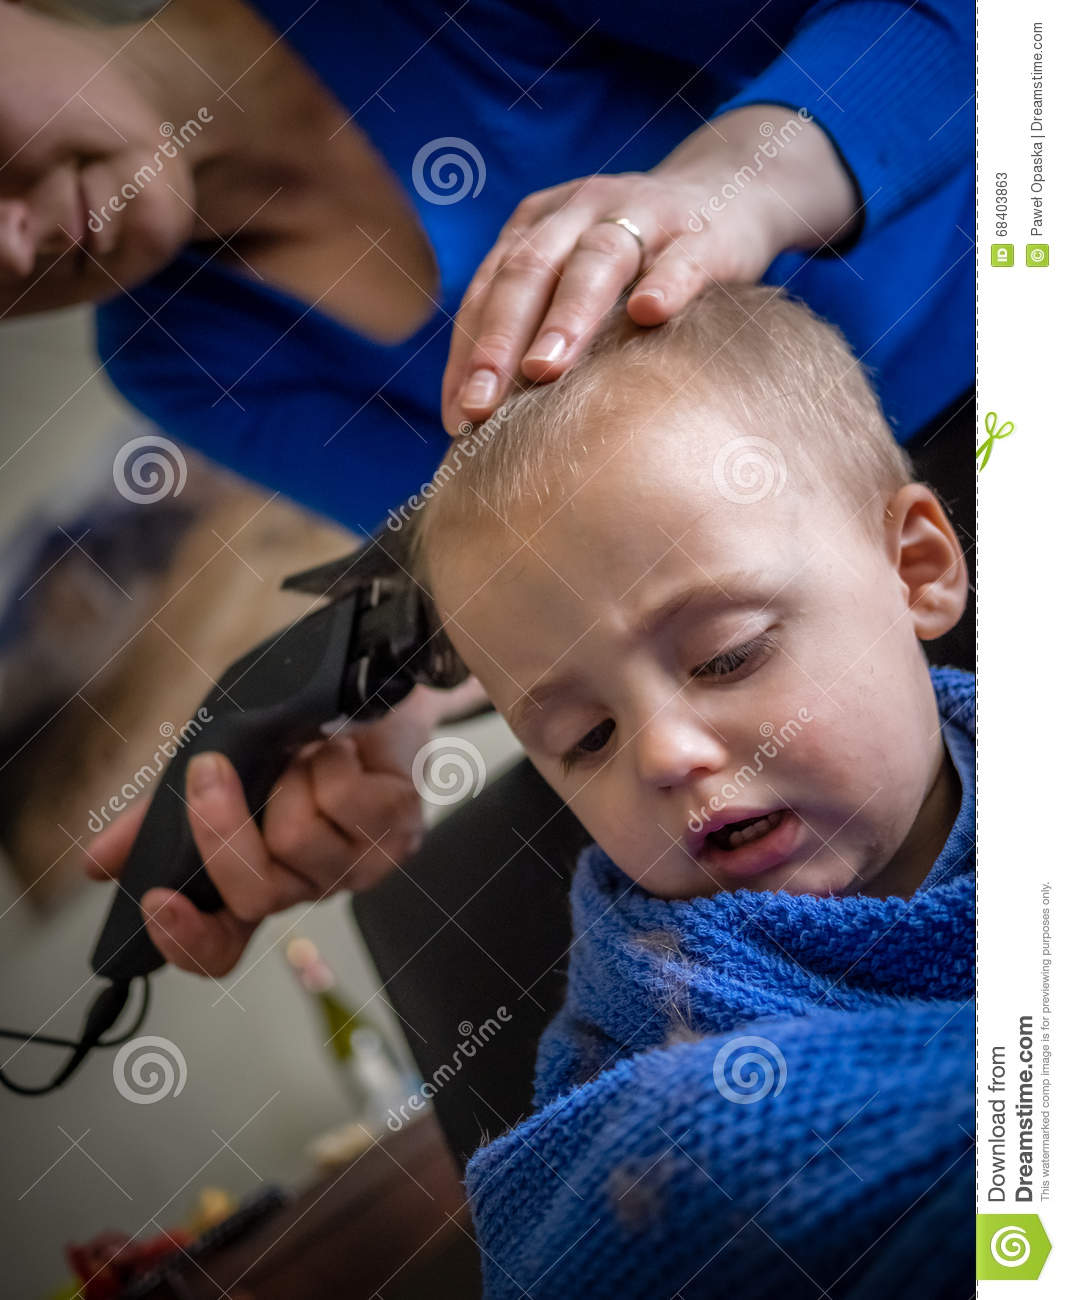 Little Boy Haircut Stock Image Image Of Design Care 68403863